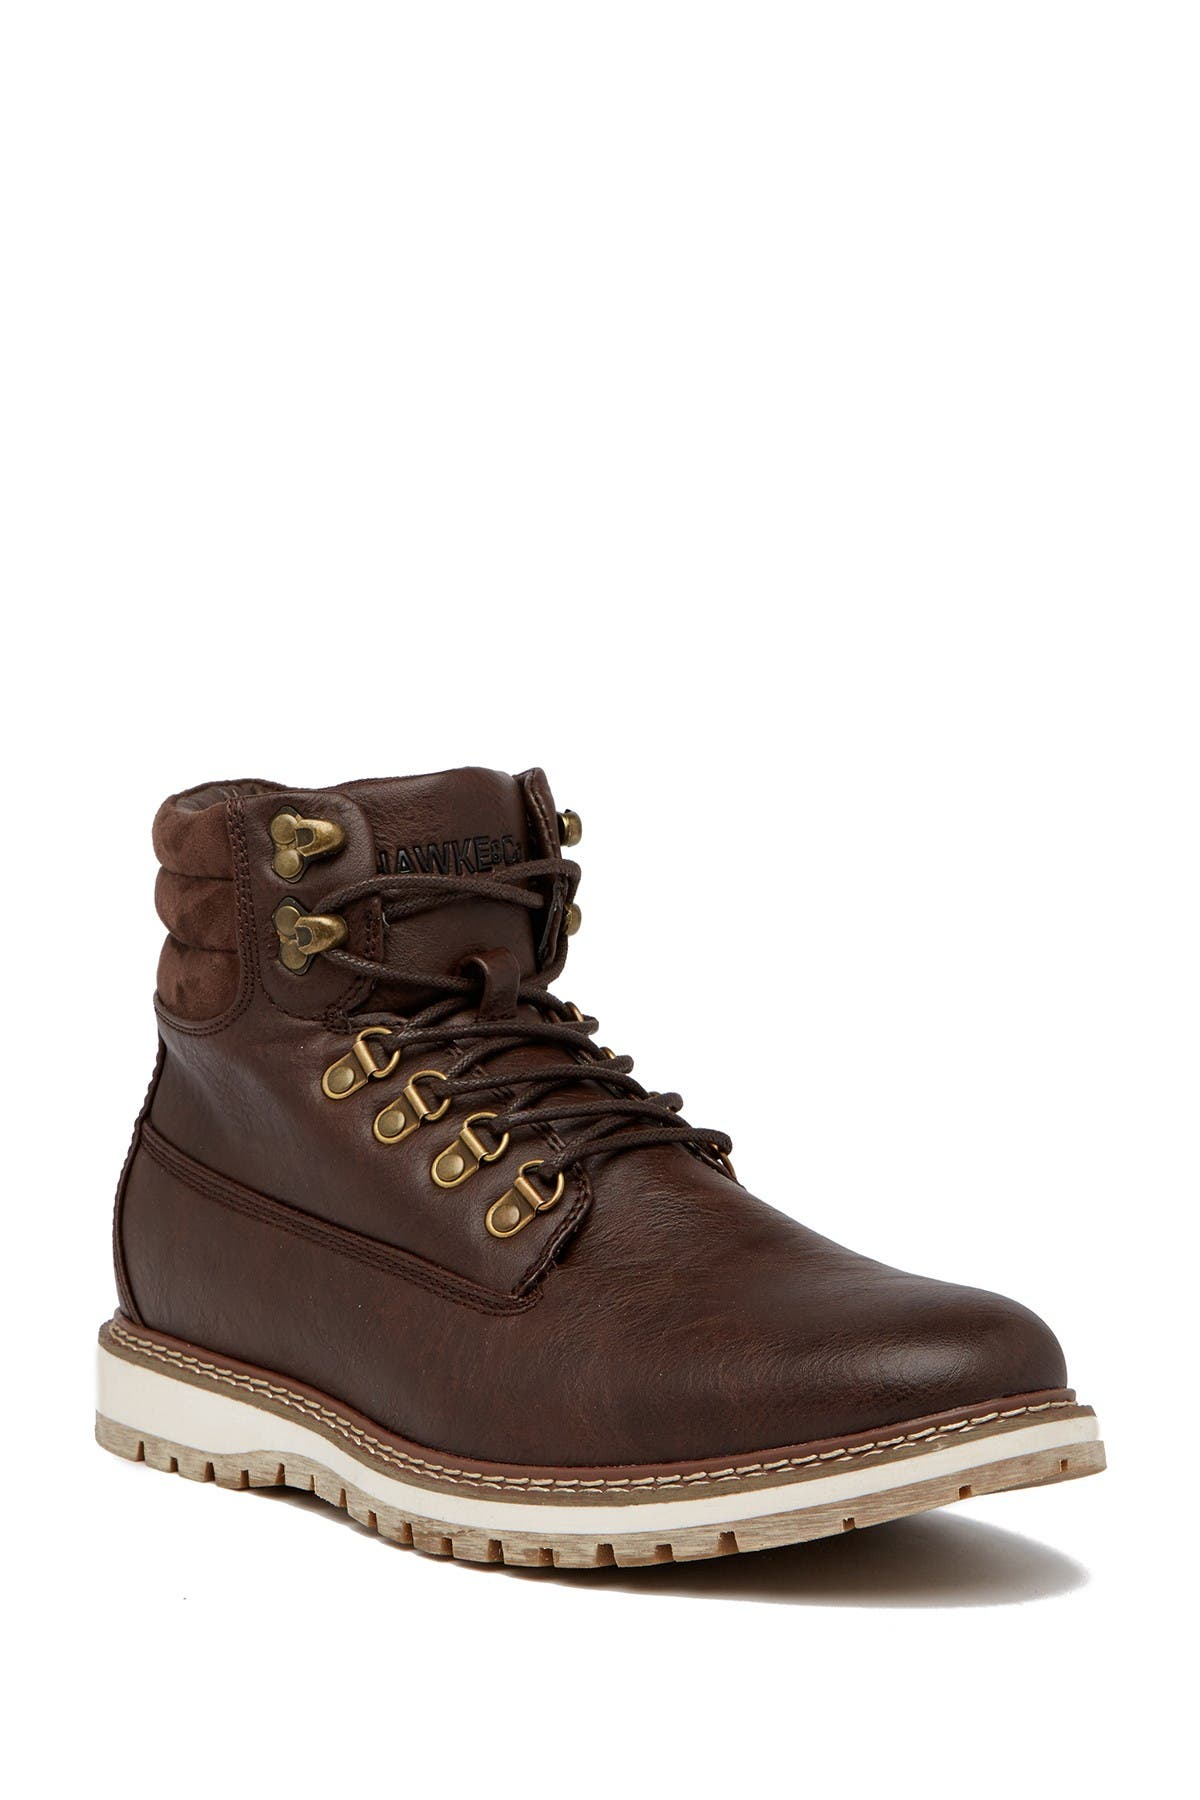 Image of Hawke & Co. Raleigh Leather Boot